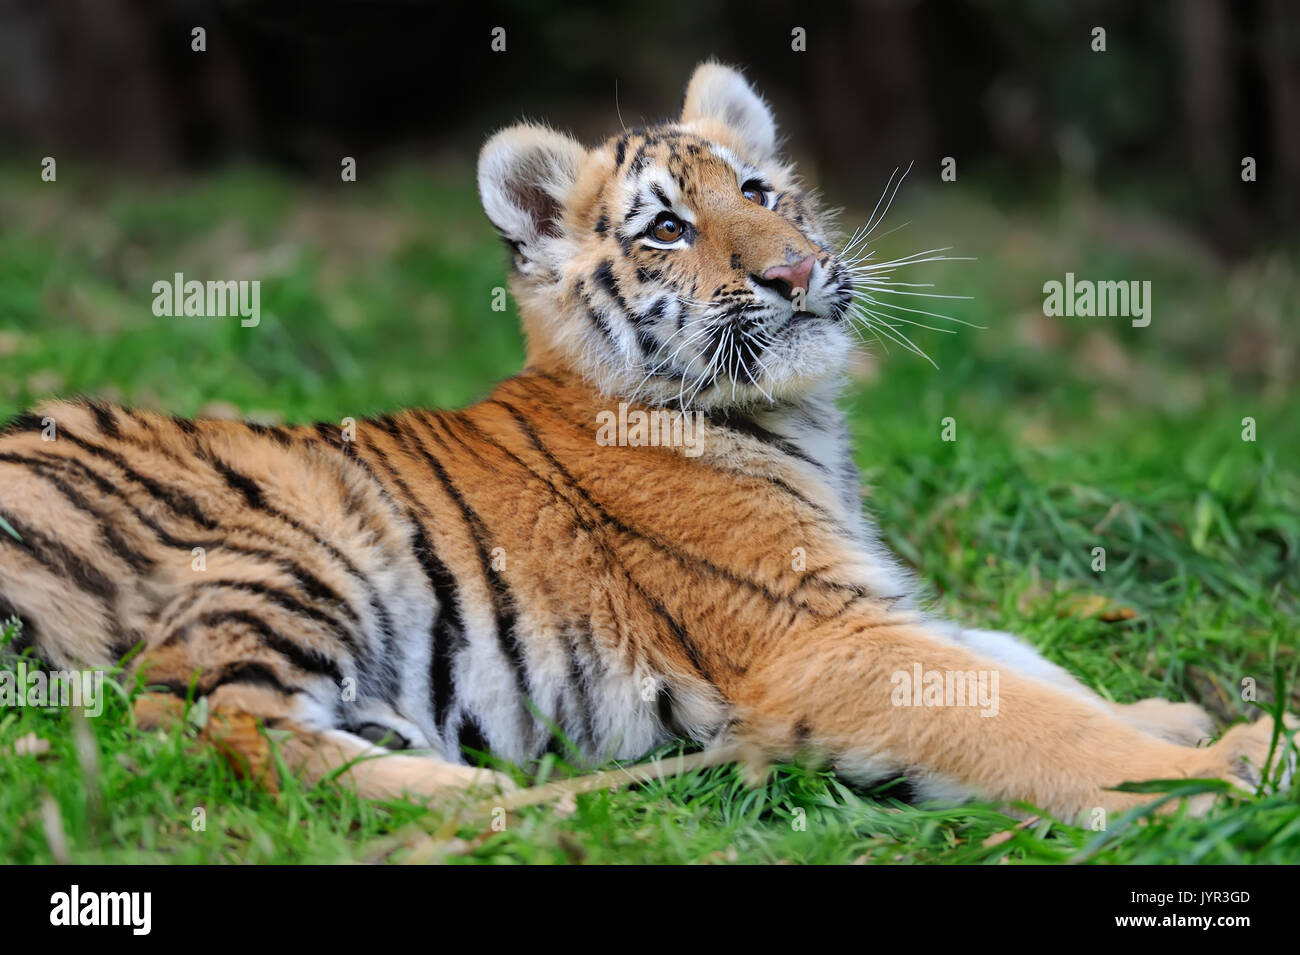 Amur Tiger Cub Stock Photos & Amur Tiger Cub Stock Images ... Cute Siberian Tiger Cubs